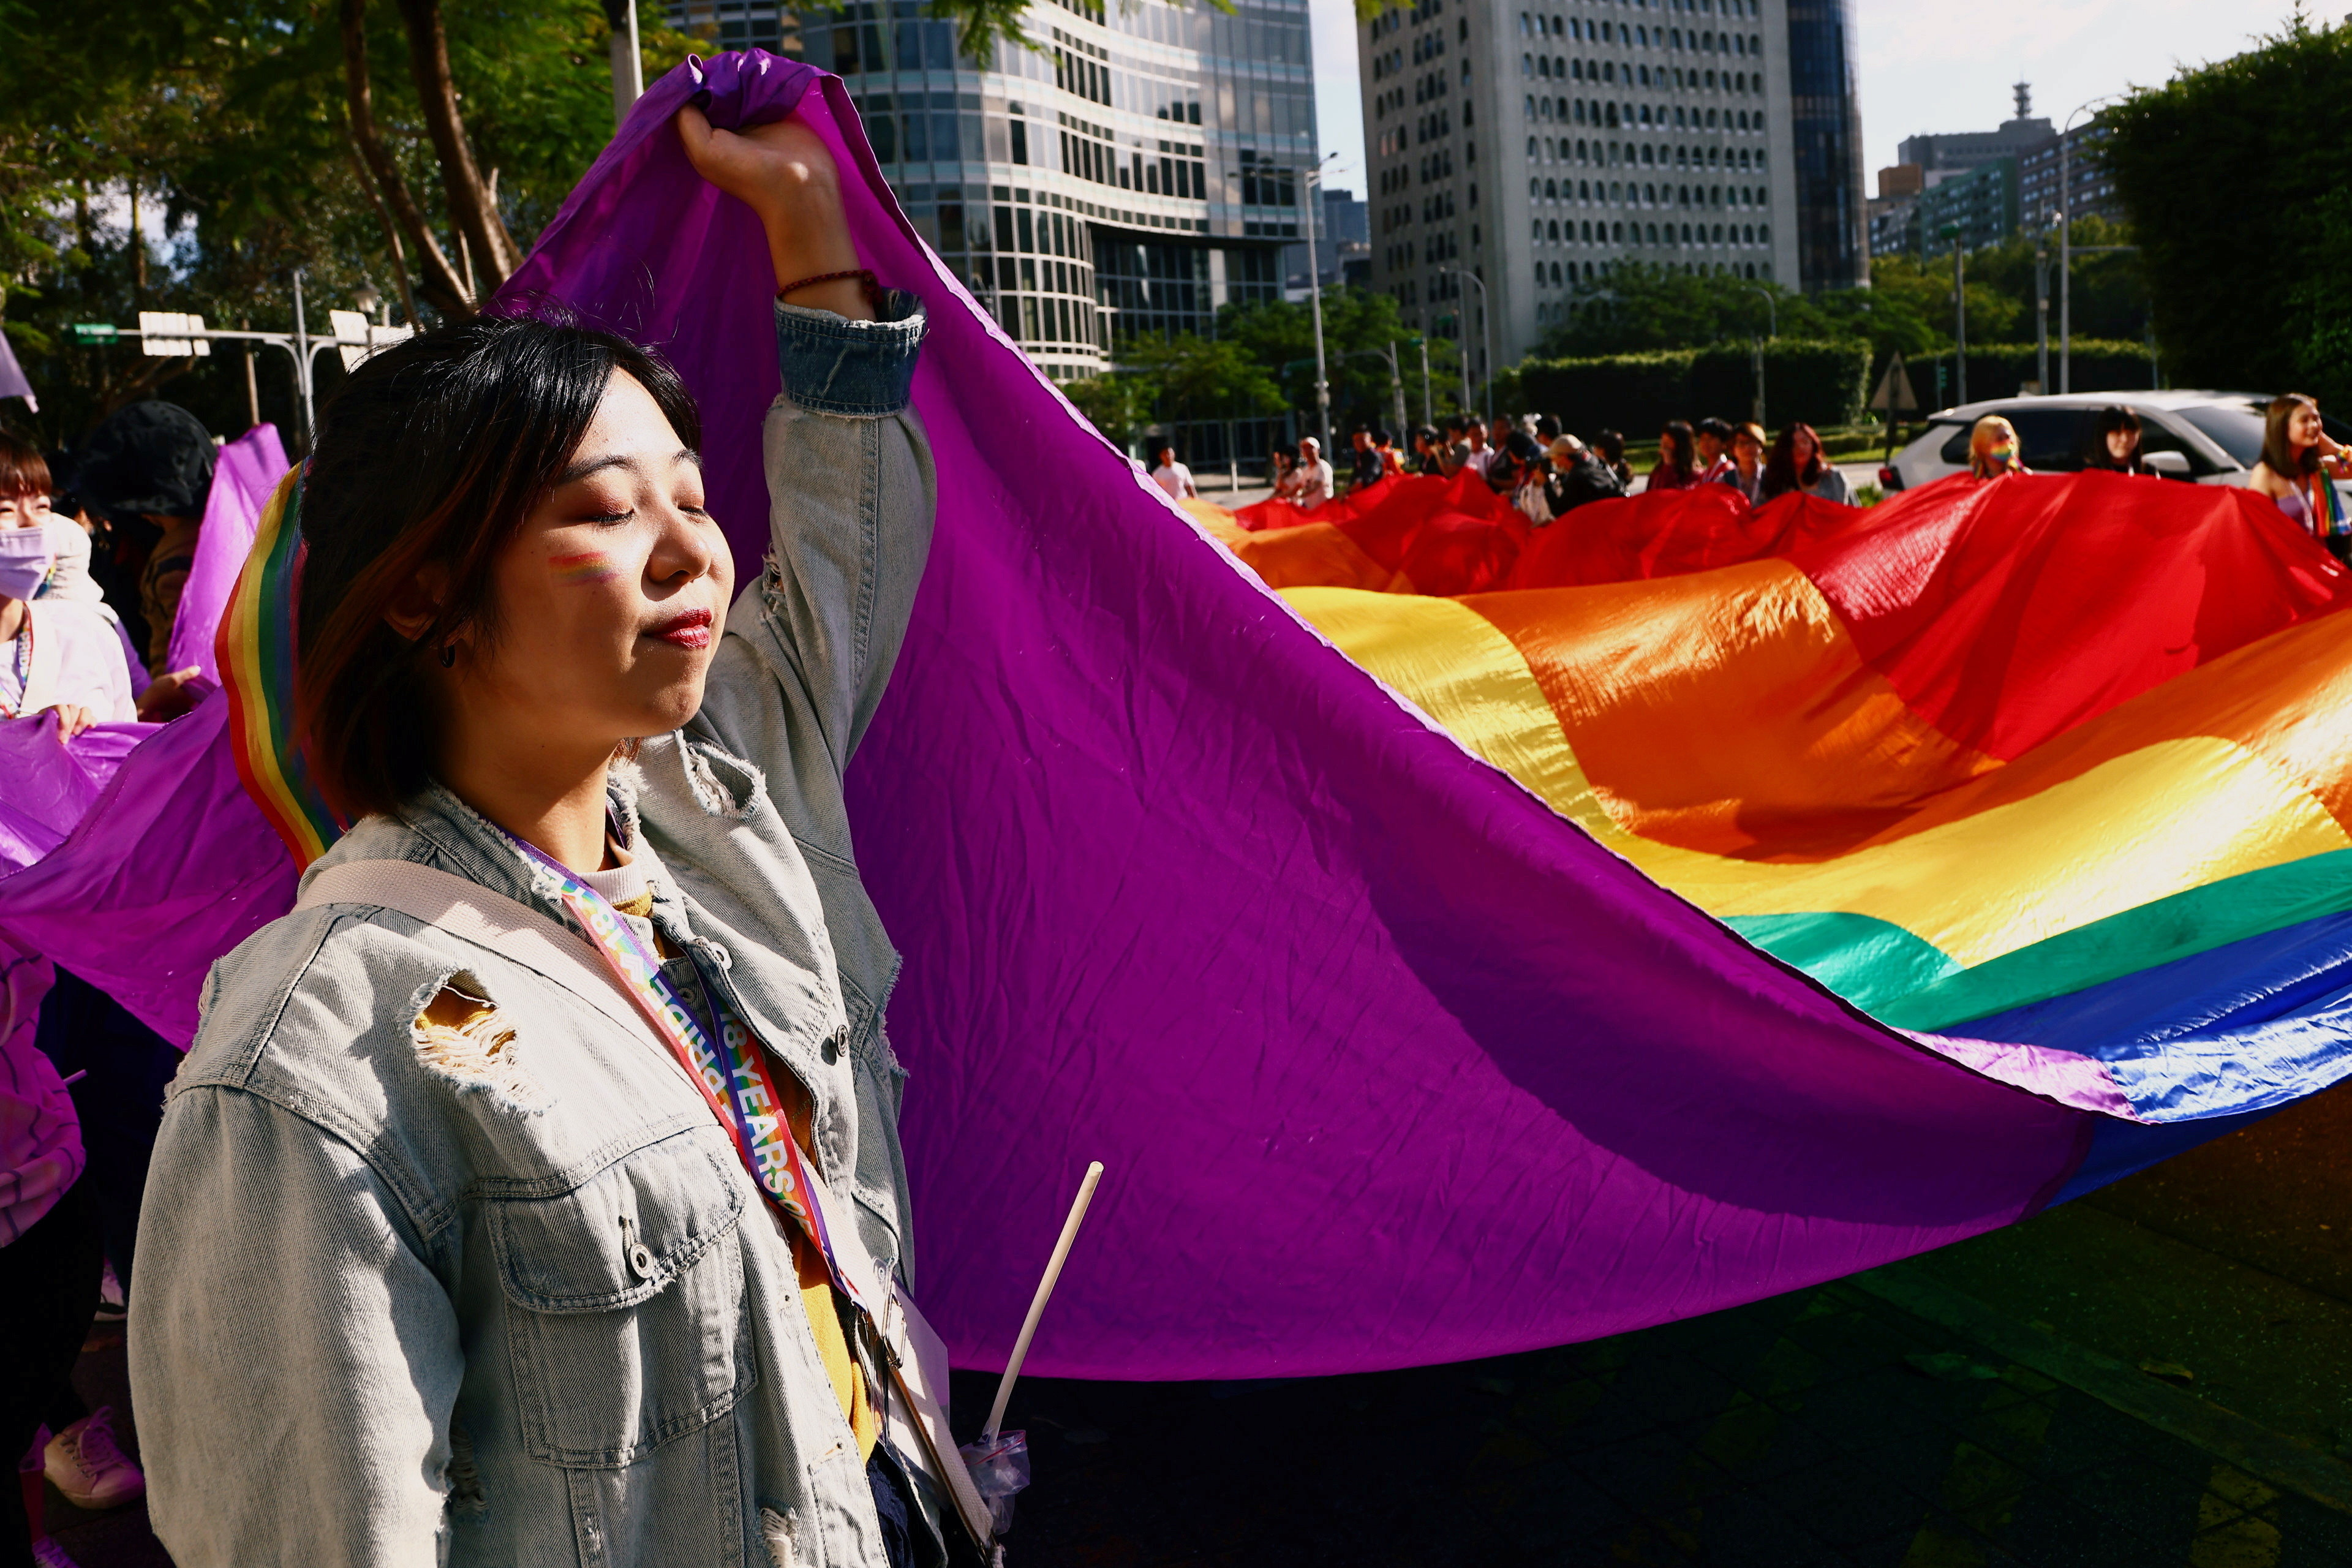 People gather during Asia's biggest pride parade in Taipei, Taiwan October 31, 2020